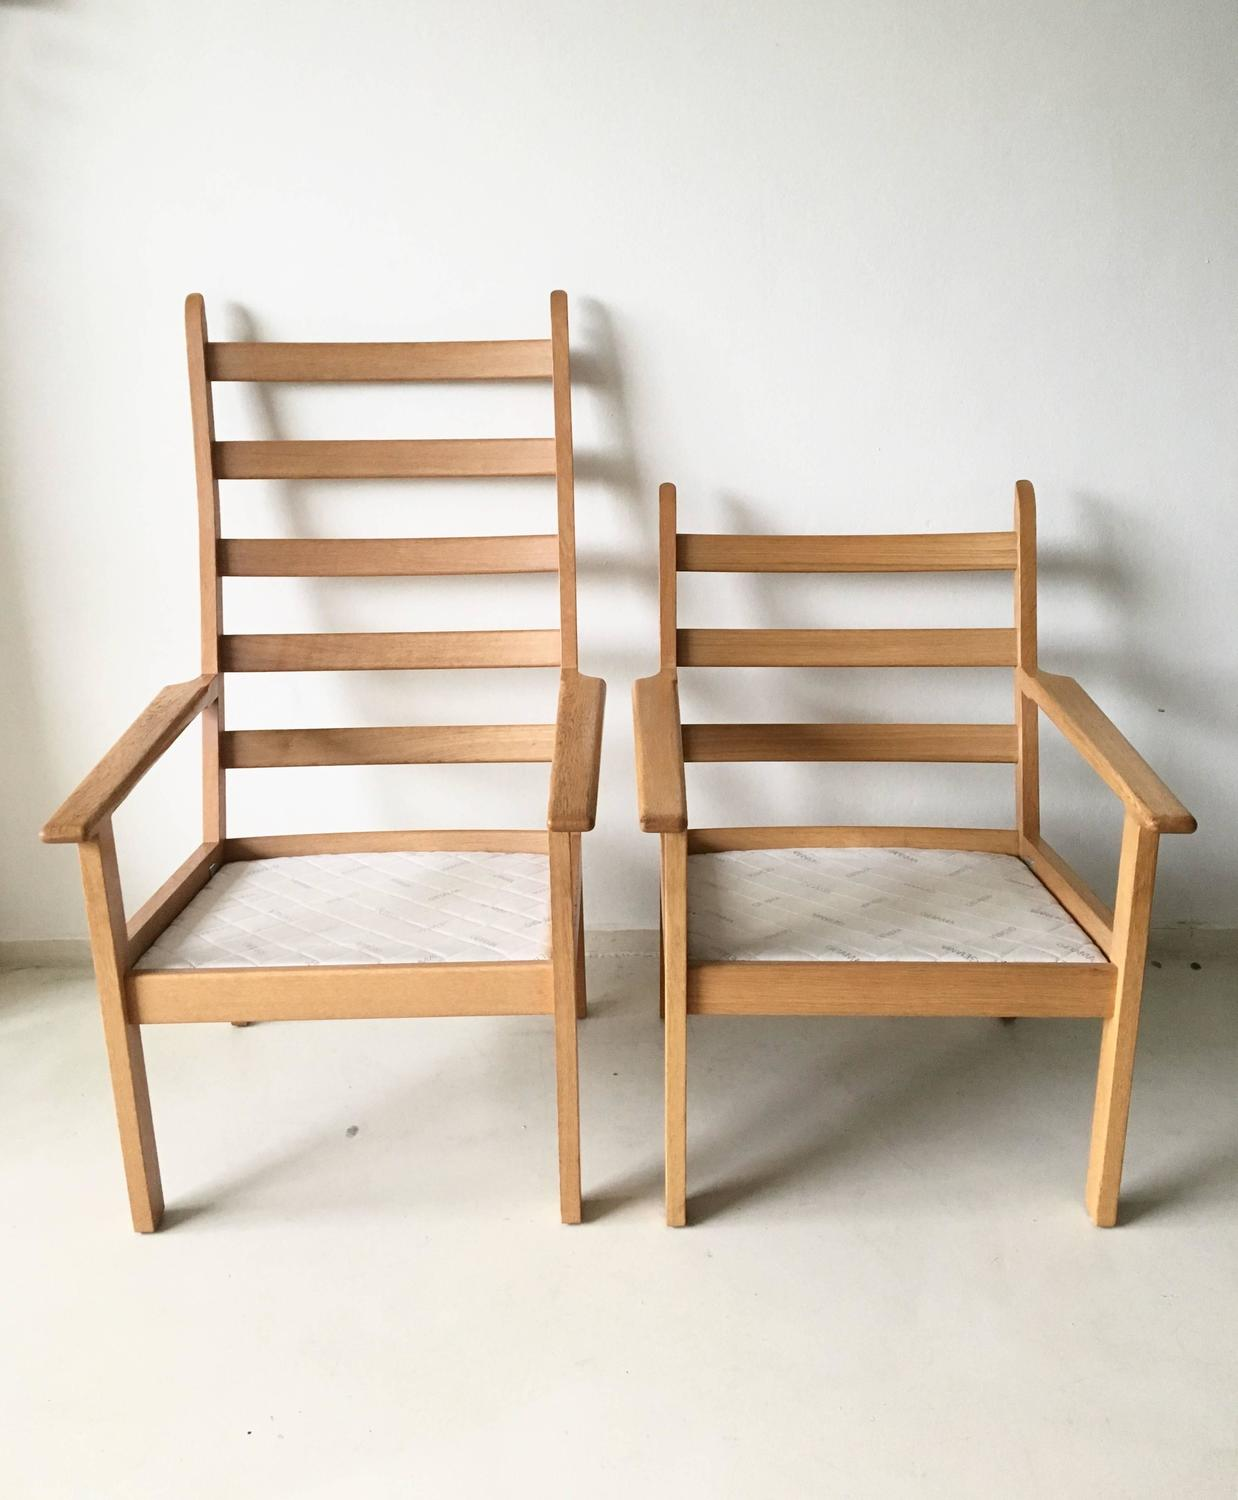 Set of chairs by hans wegner for getama 1980s for sale at for Lounge chair kopie